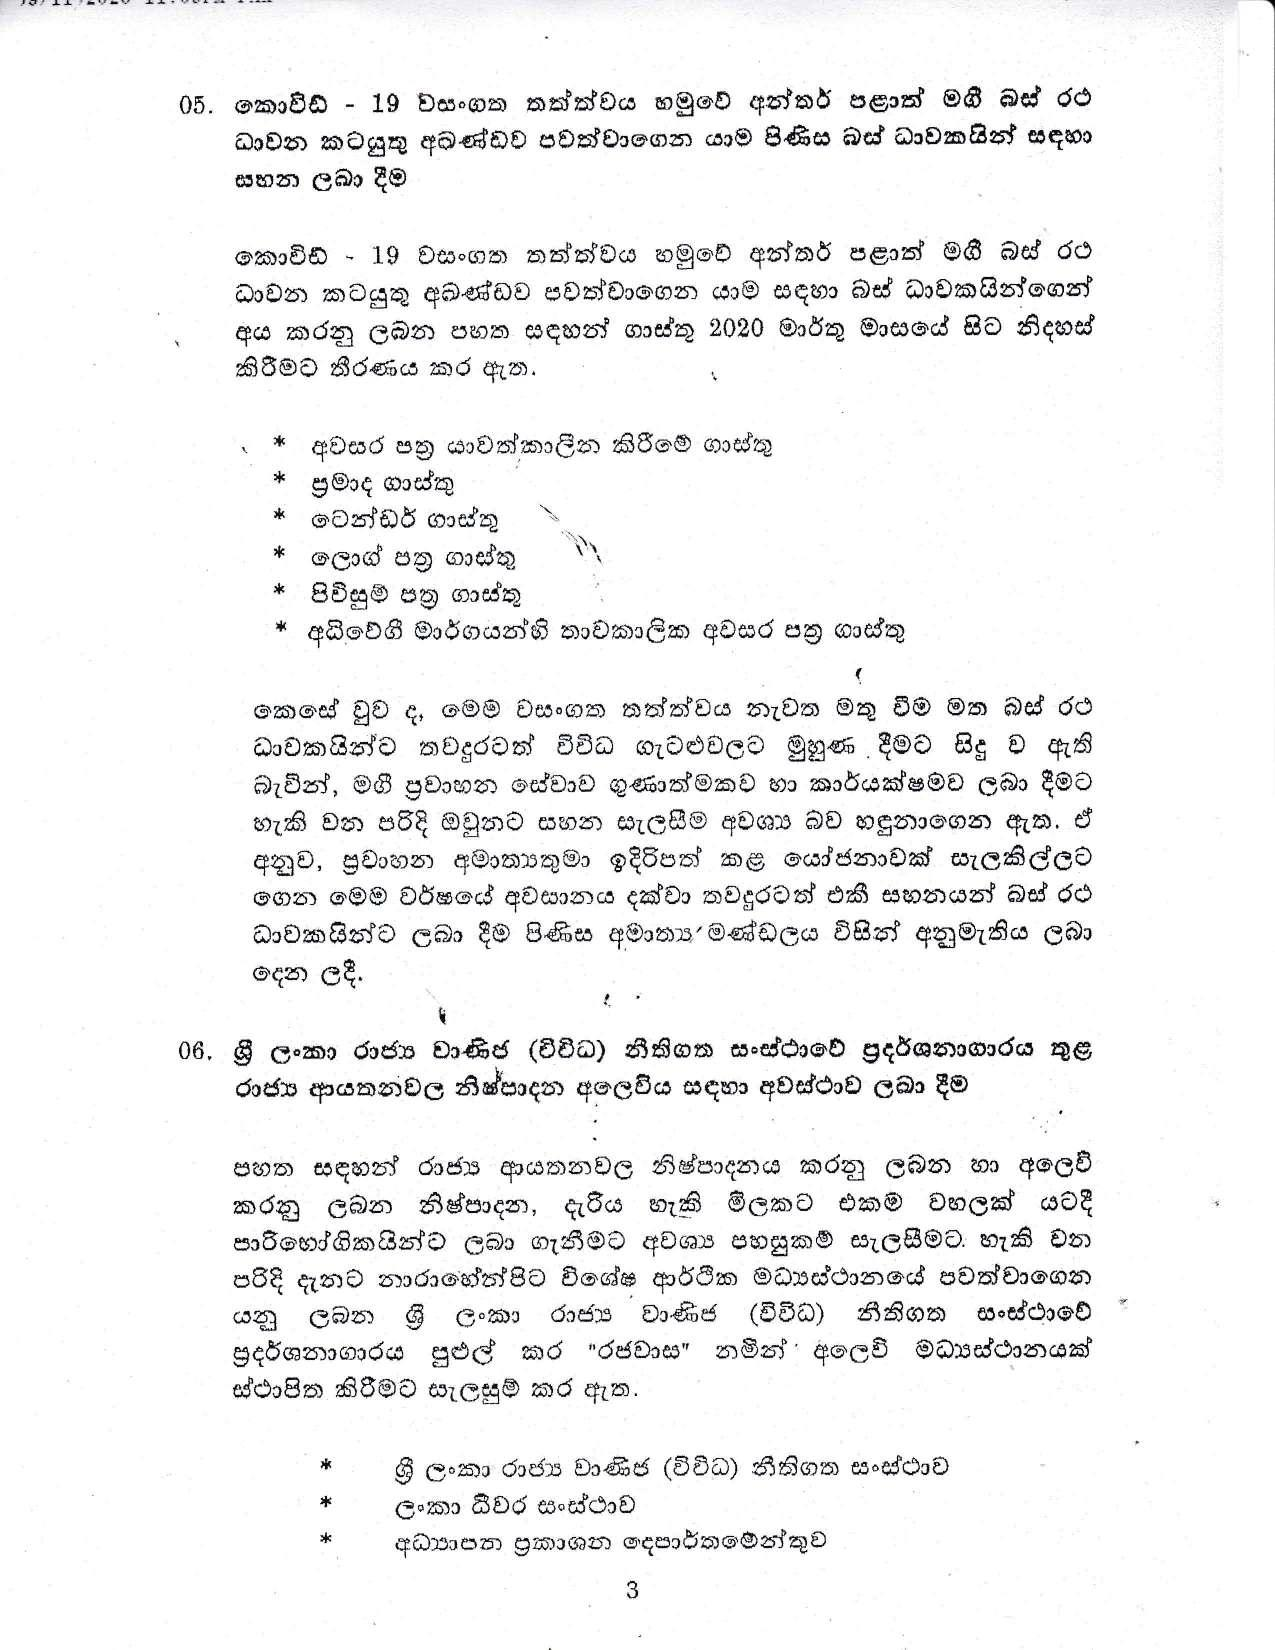 Cabinet Decision on 09.11.2020 Sinhala page 003